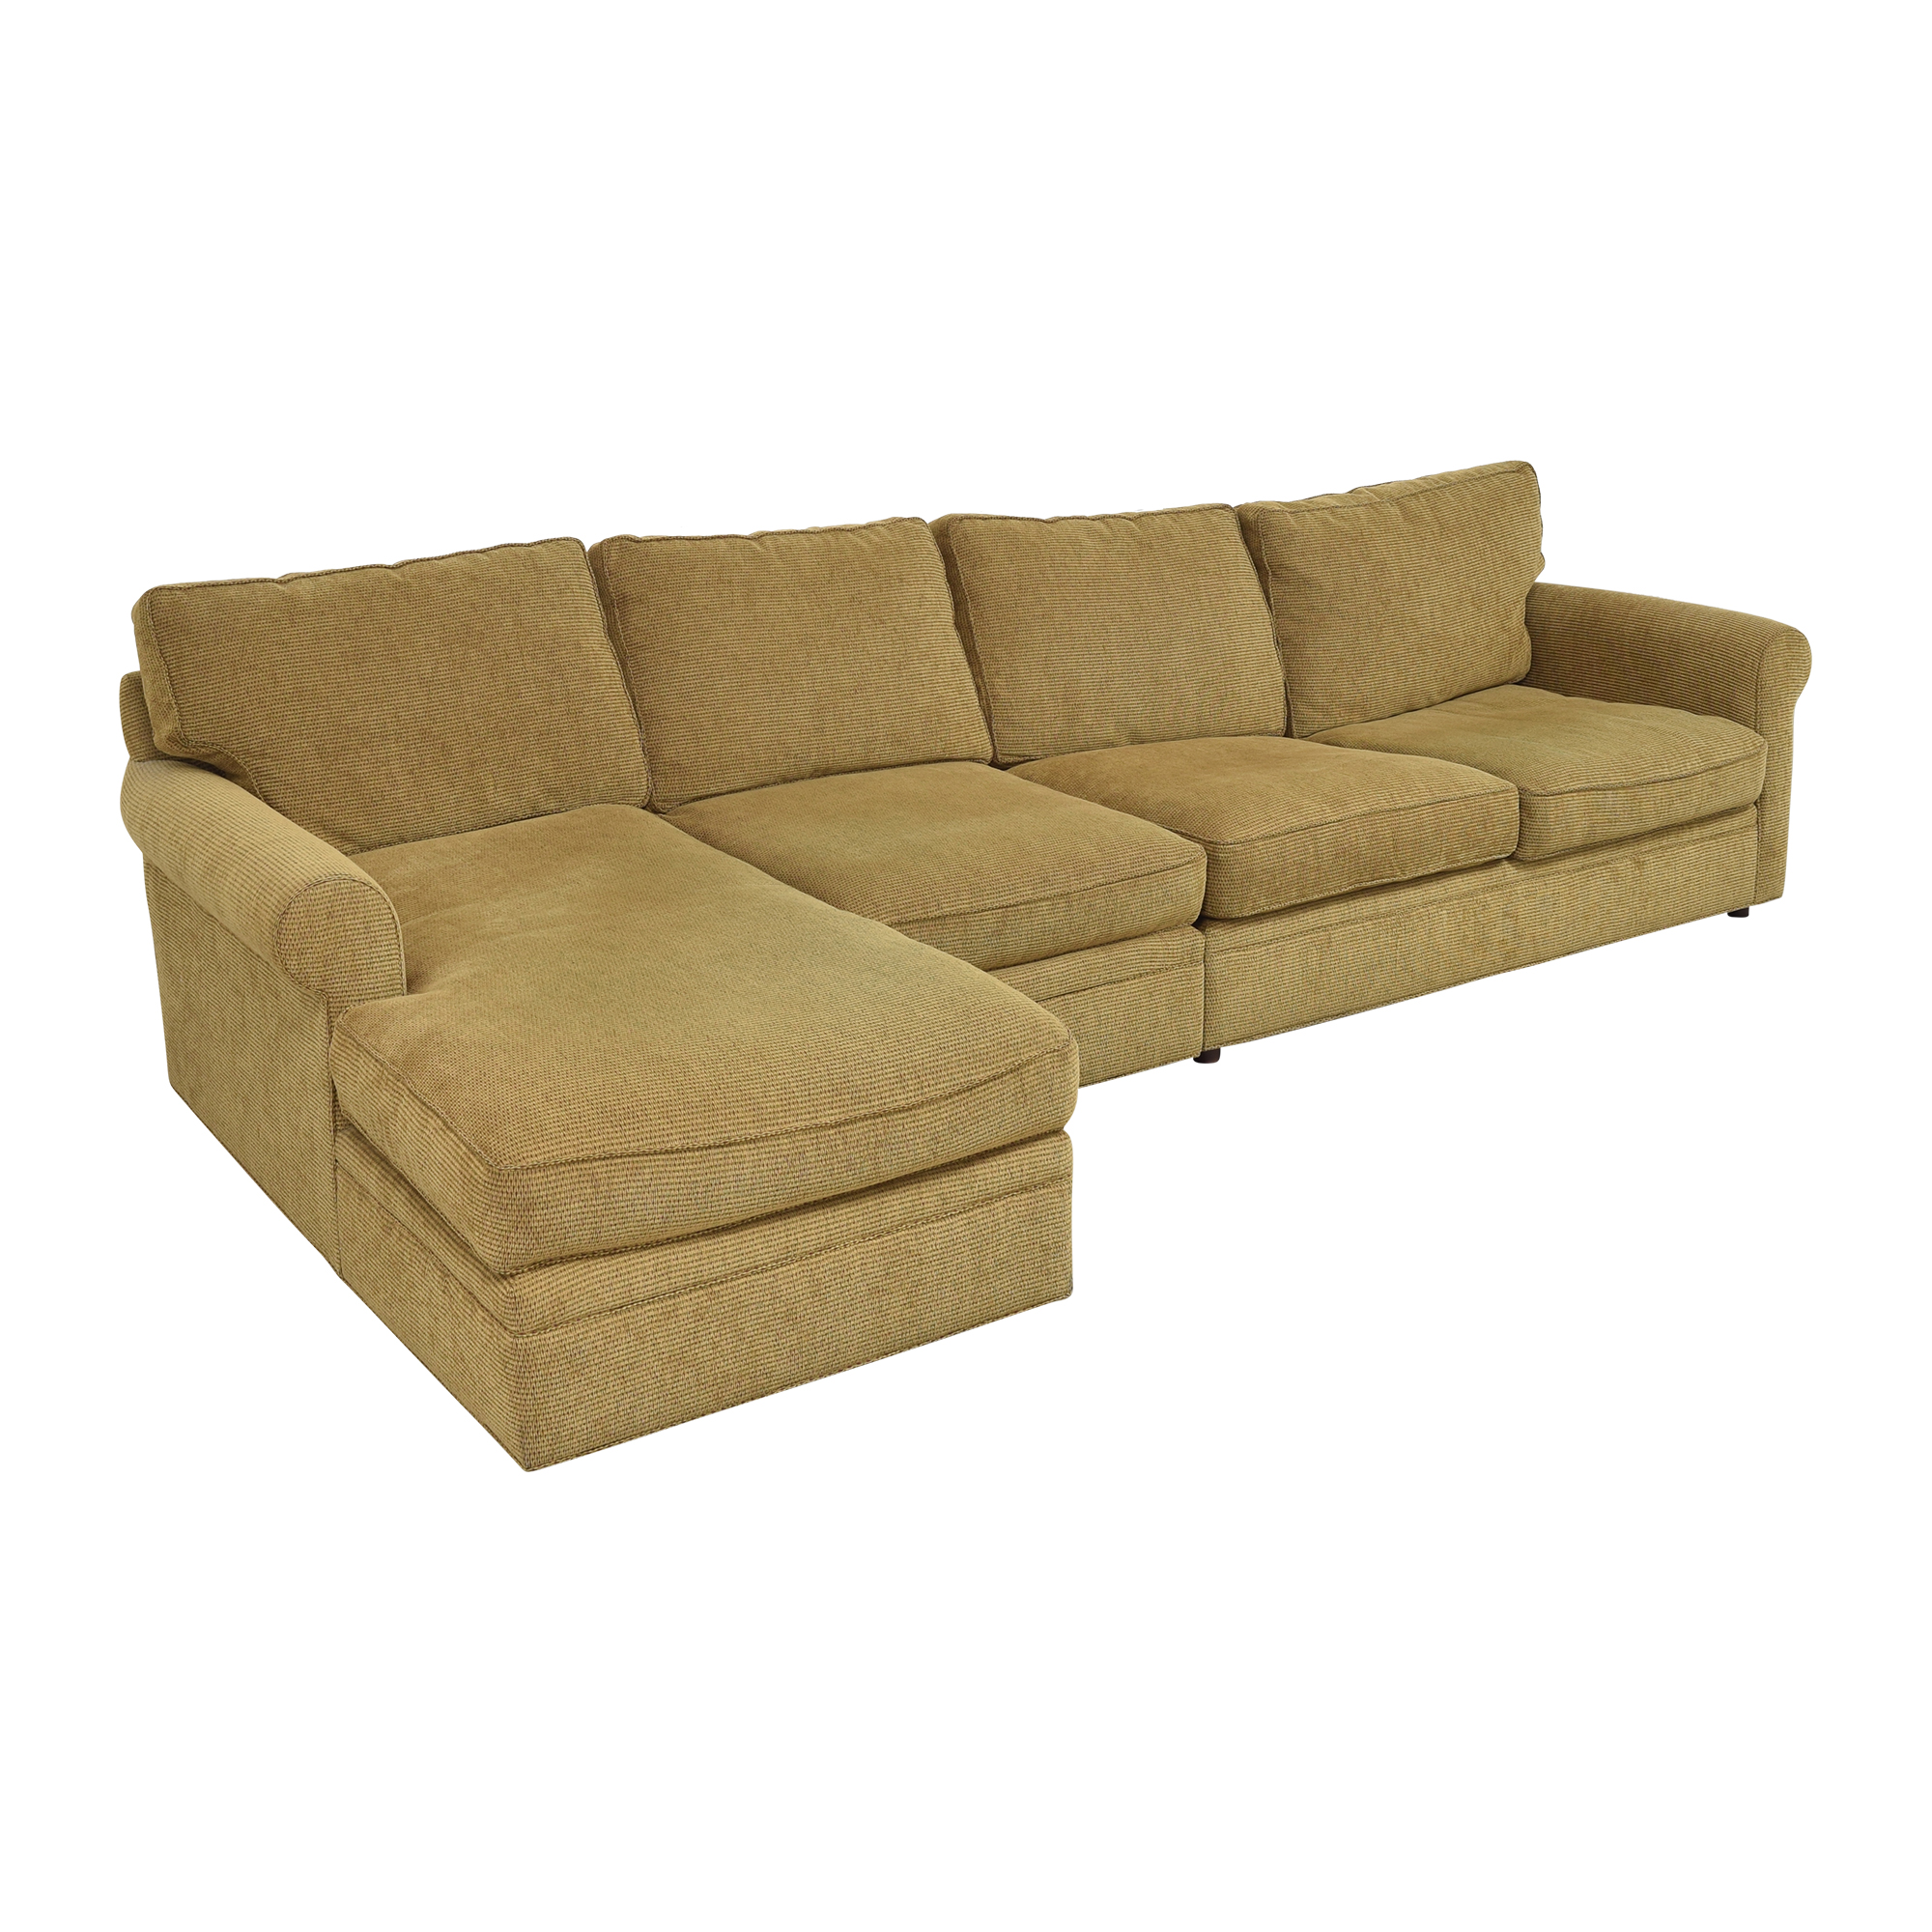 Crate & Barrel Chaise Sectional Sleeper Sofa Crate & Barrel